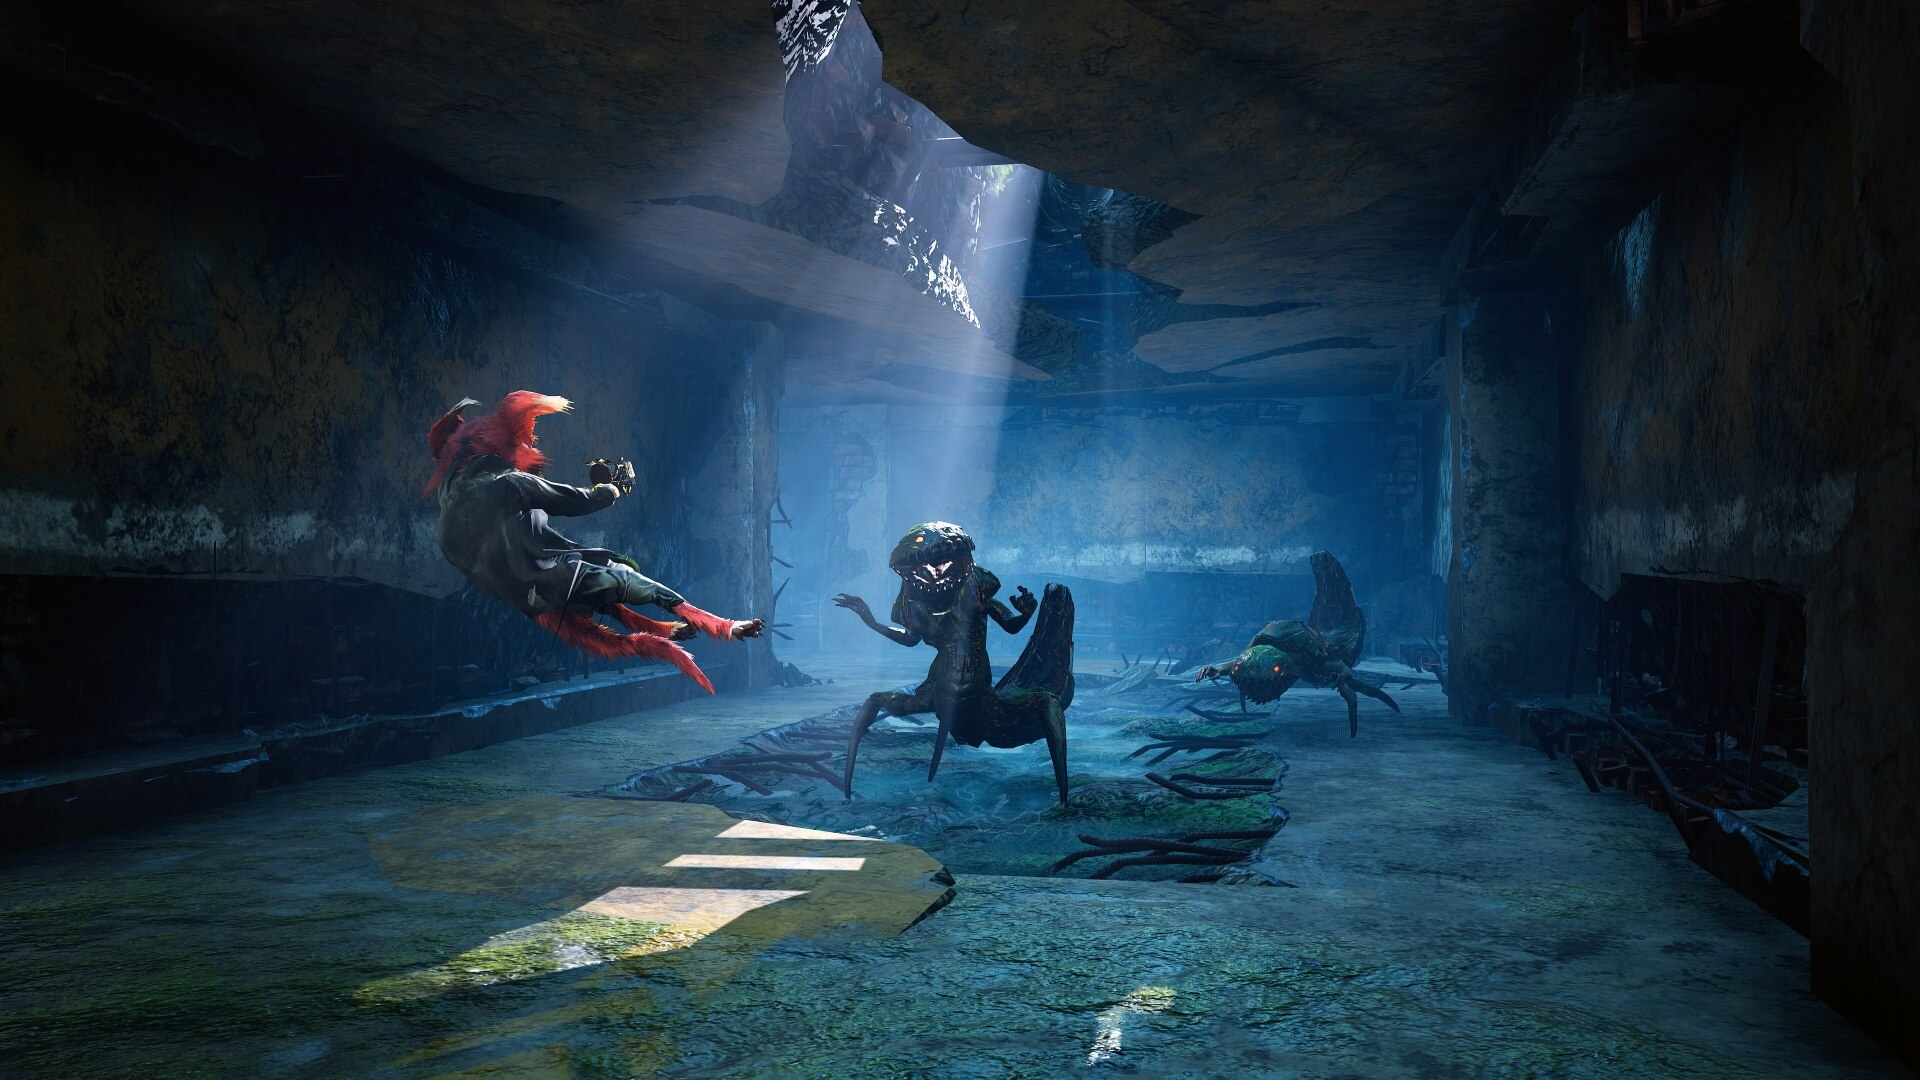 THQ Nordic Announces Biomutant ARPG for 2018